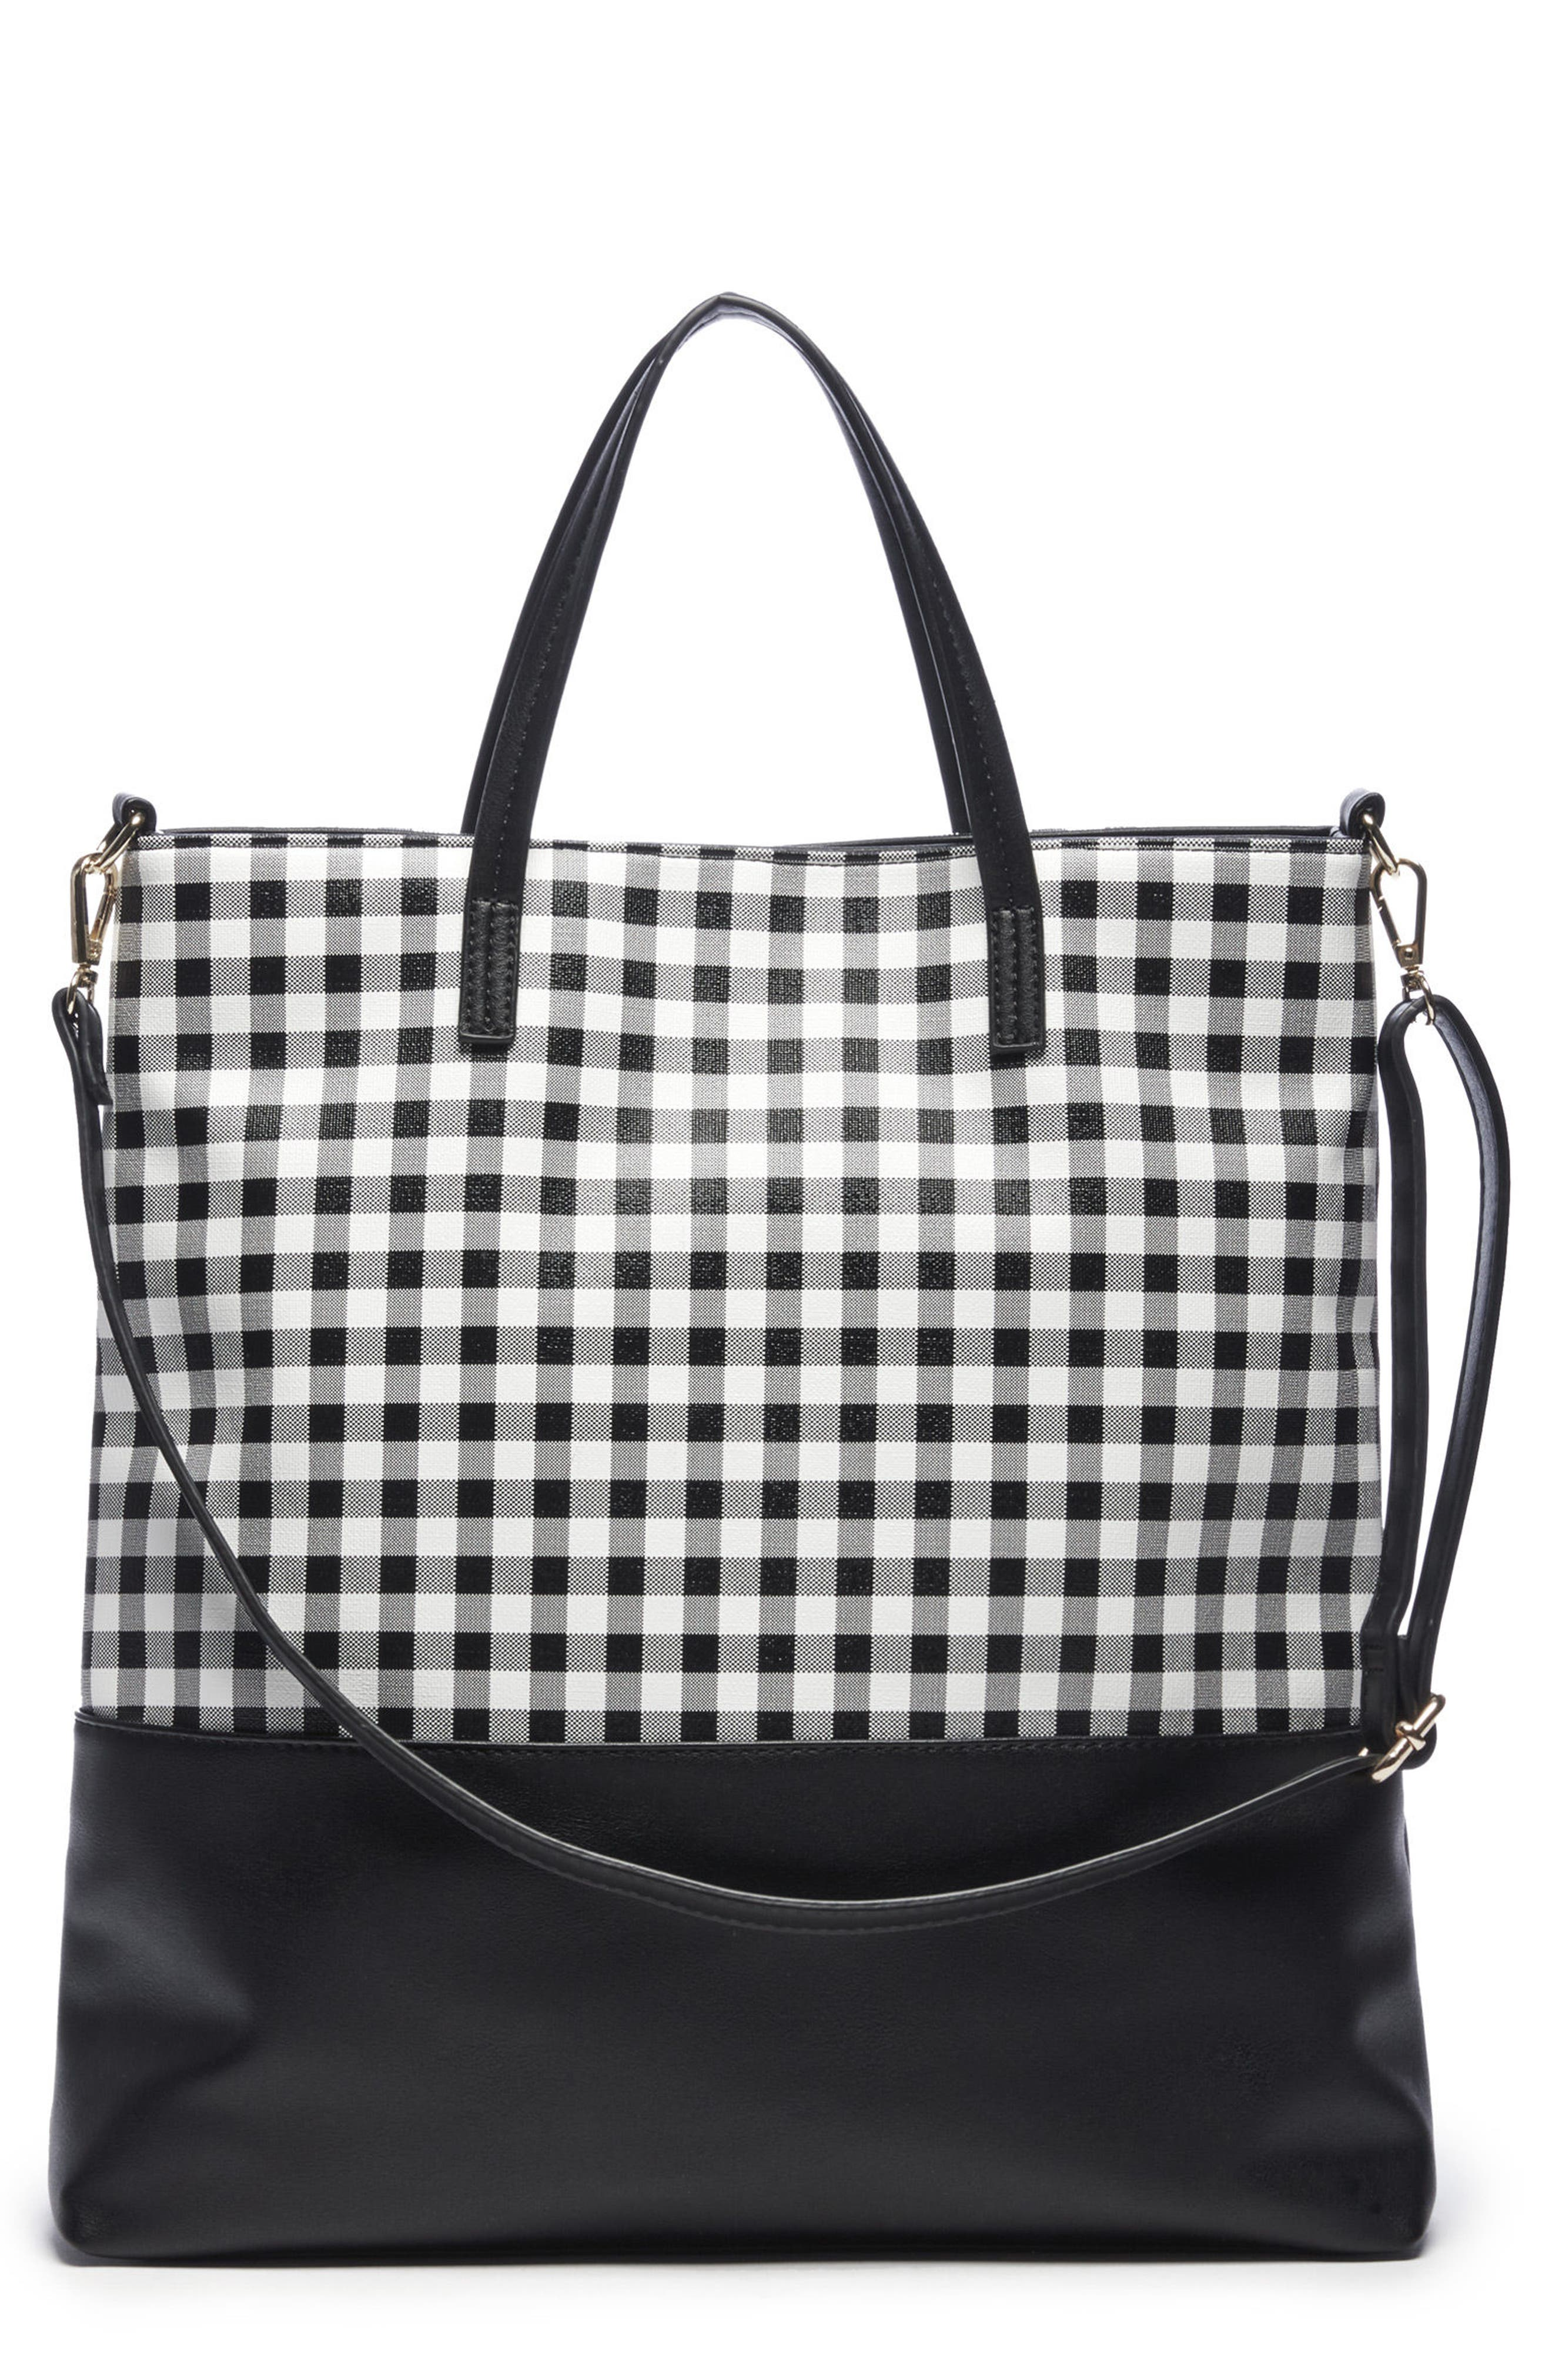 Gingham Faux Leather Tote,                         Main,                         color, Black/ White